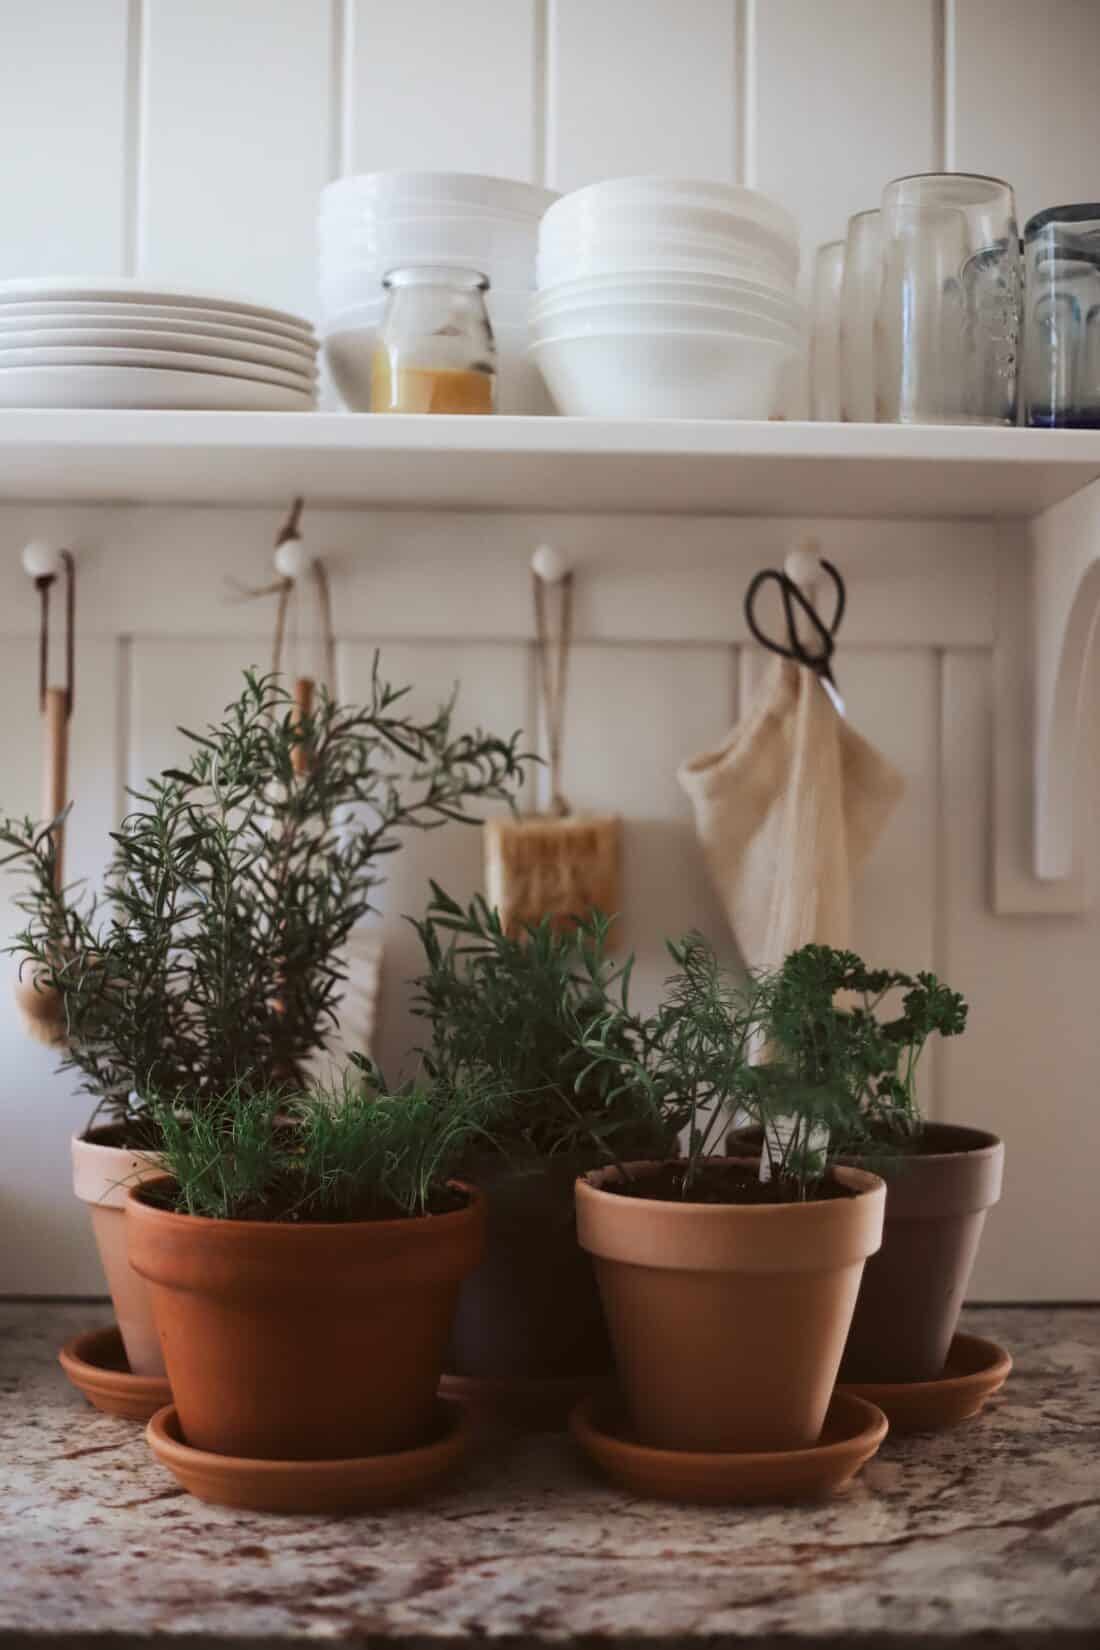 rosemary cilantro parsley in pots on a kitchen counter